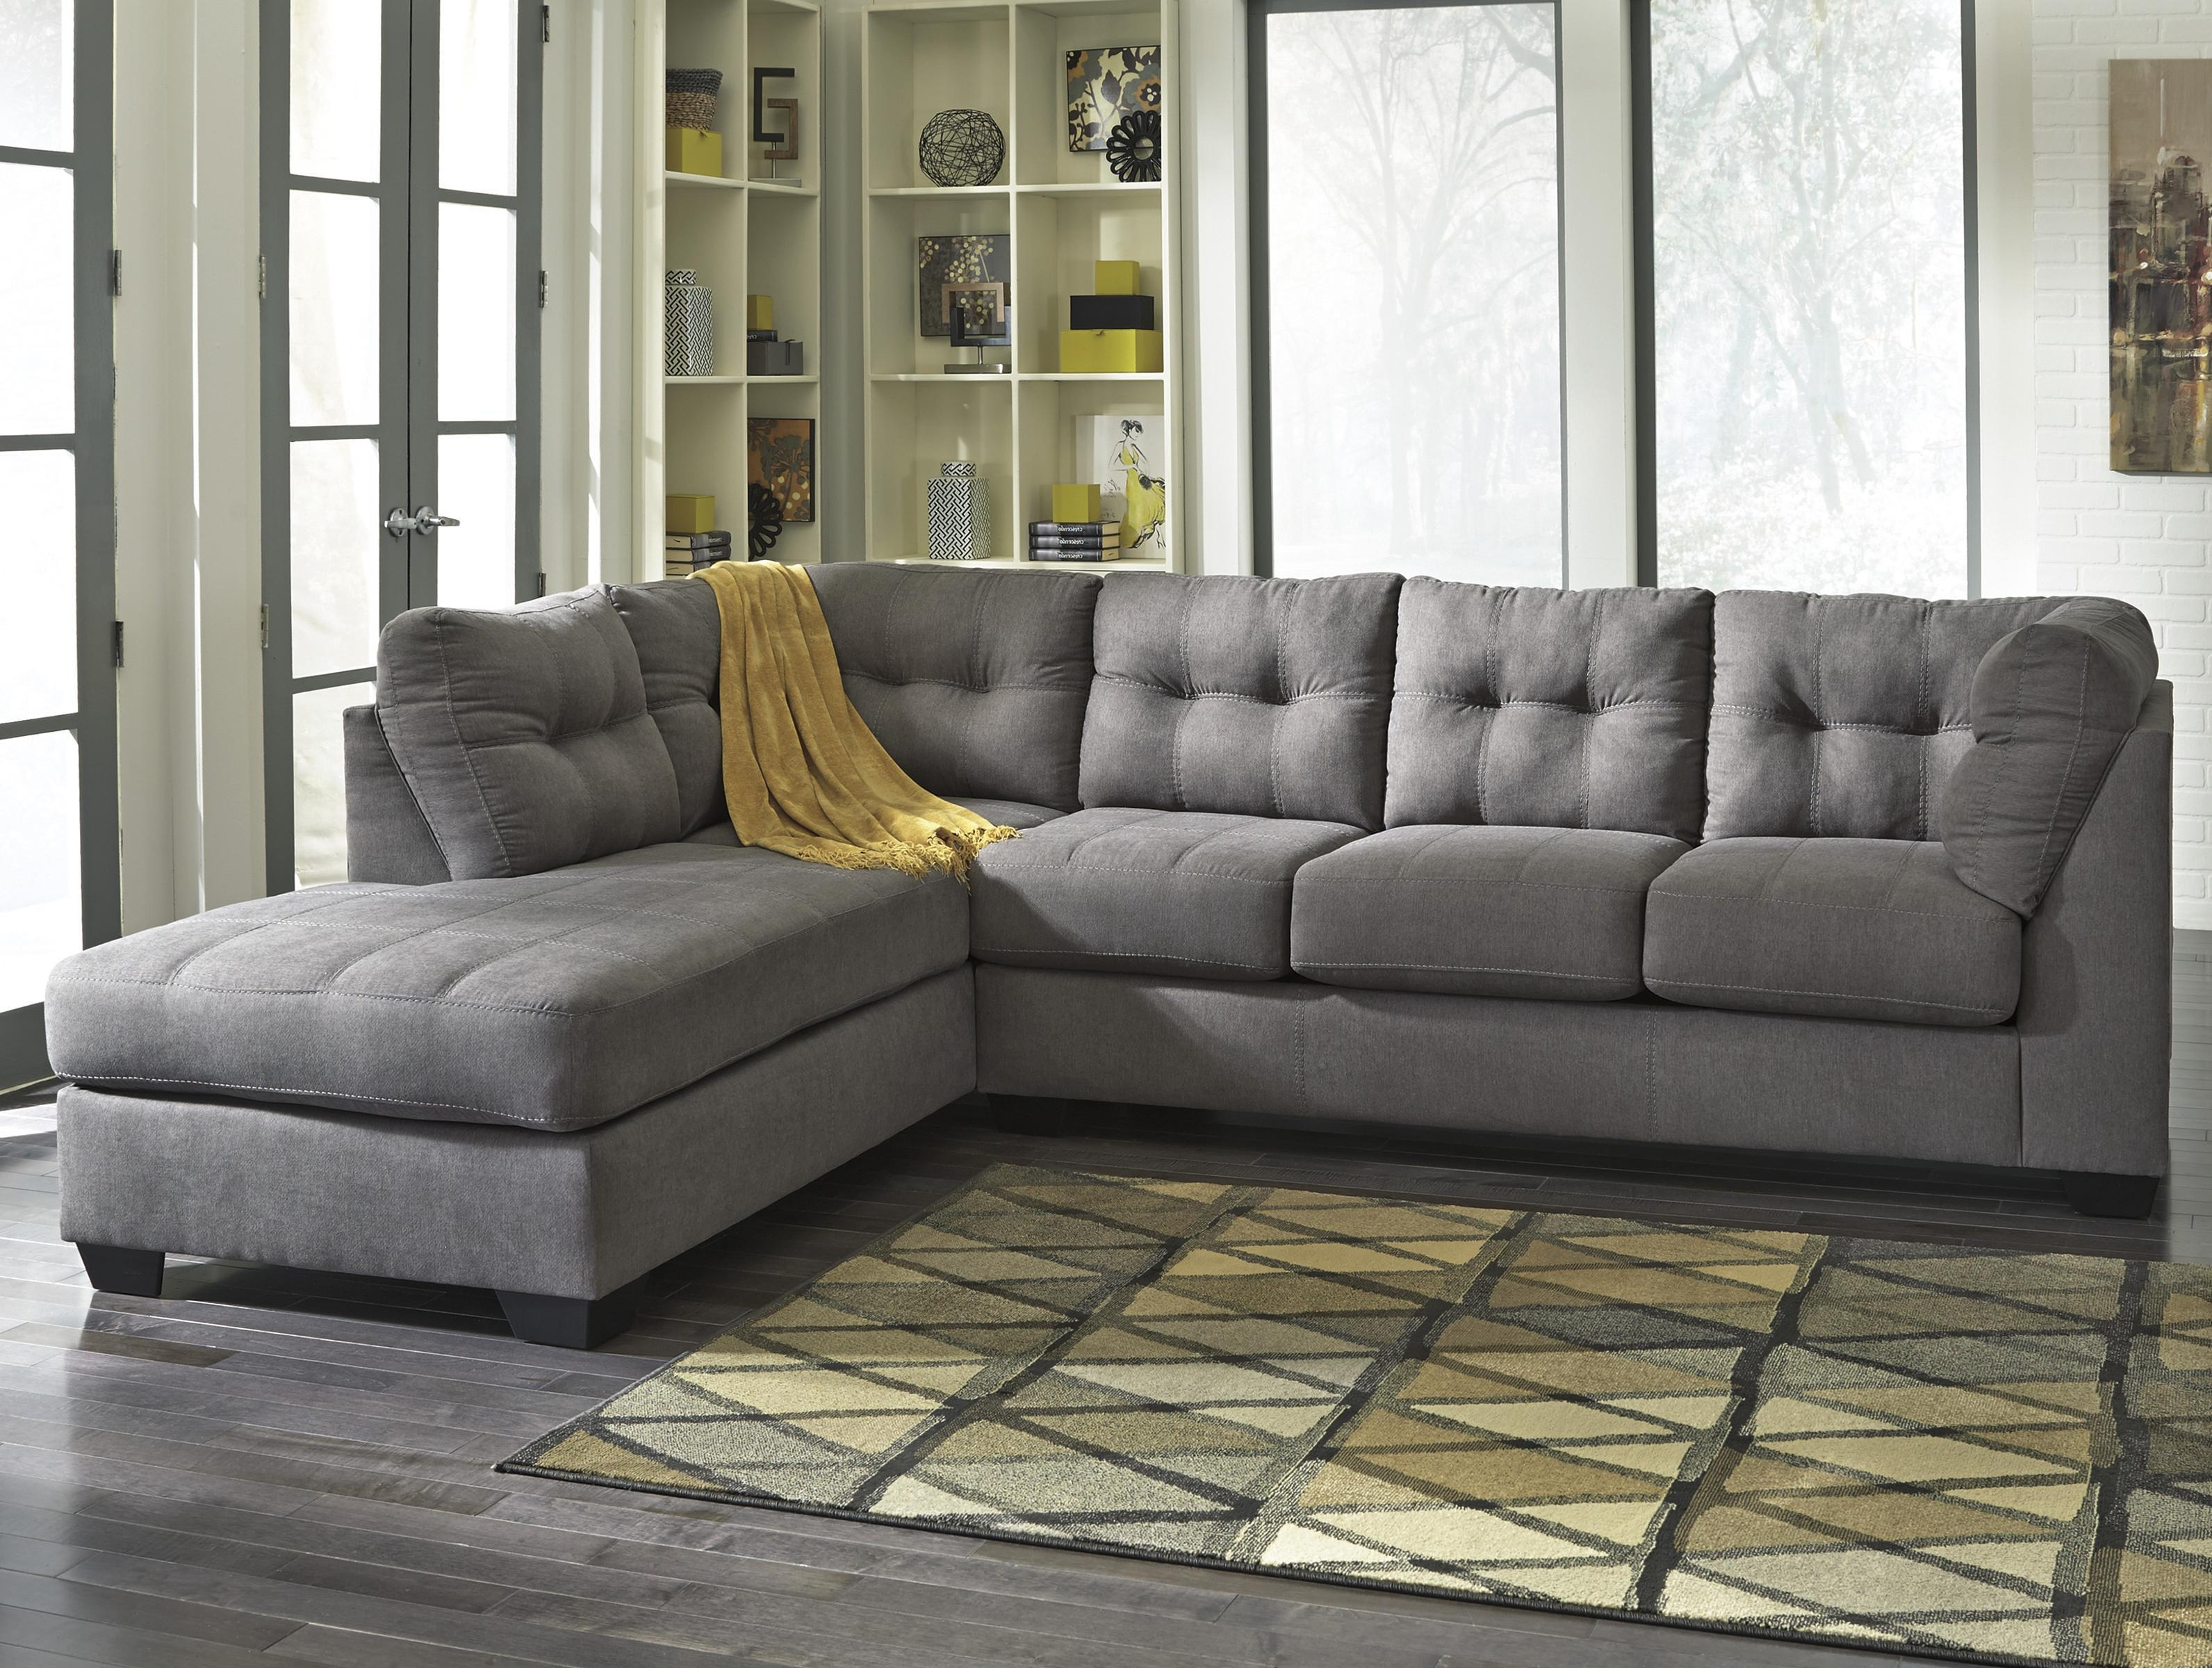 Sofas : Marvelous Small Sectional Sleeper Sofa 5 Piece Sectional With Small 2 Piece Sectional Sofas (Image 21 of 23)